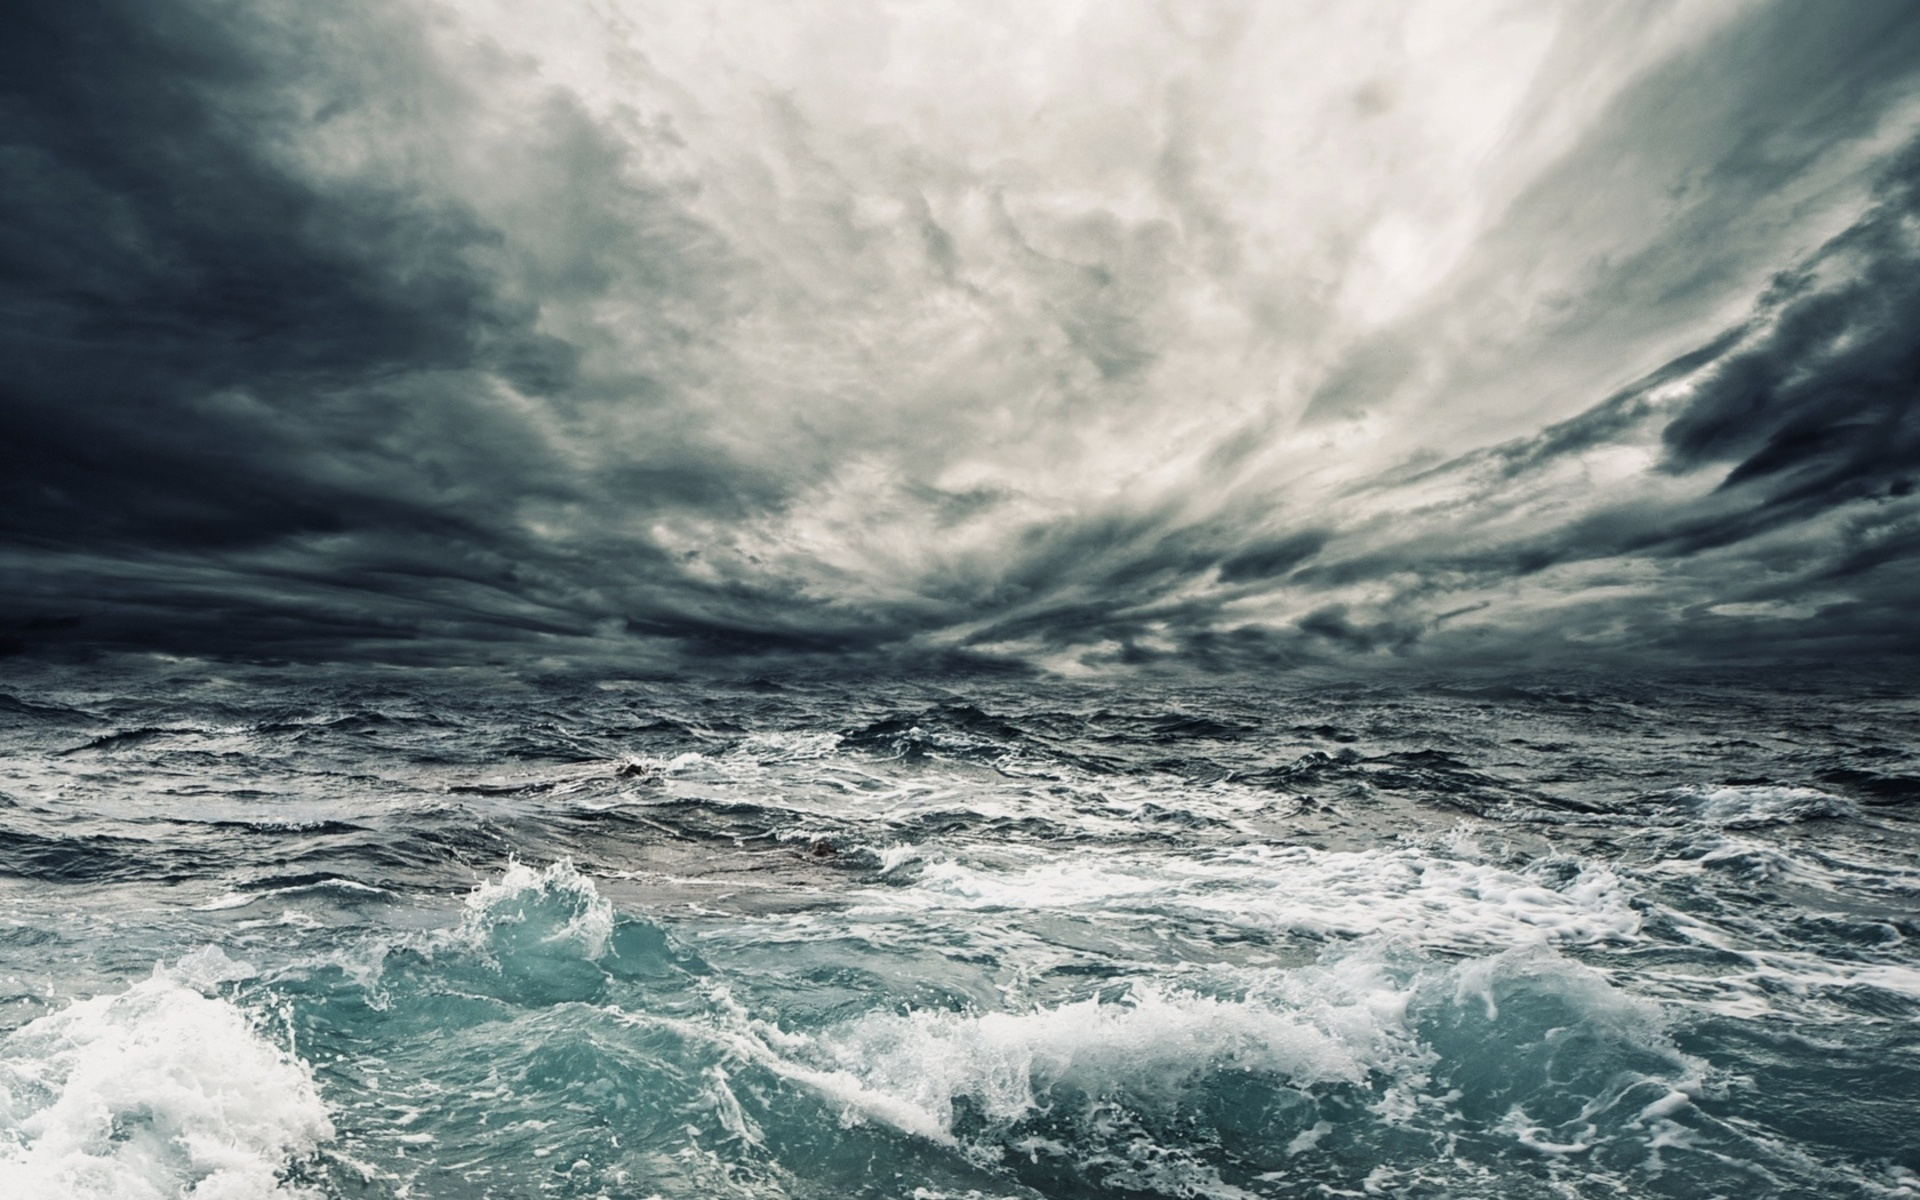 Dark stormy sea